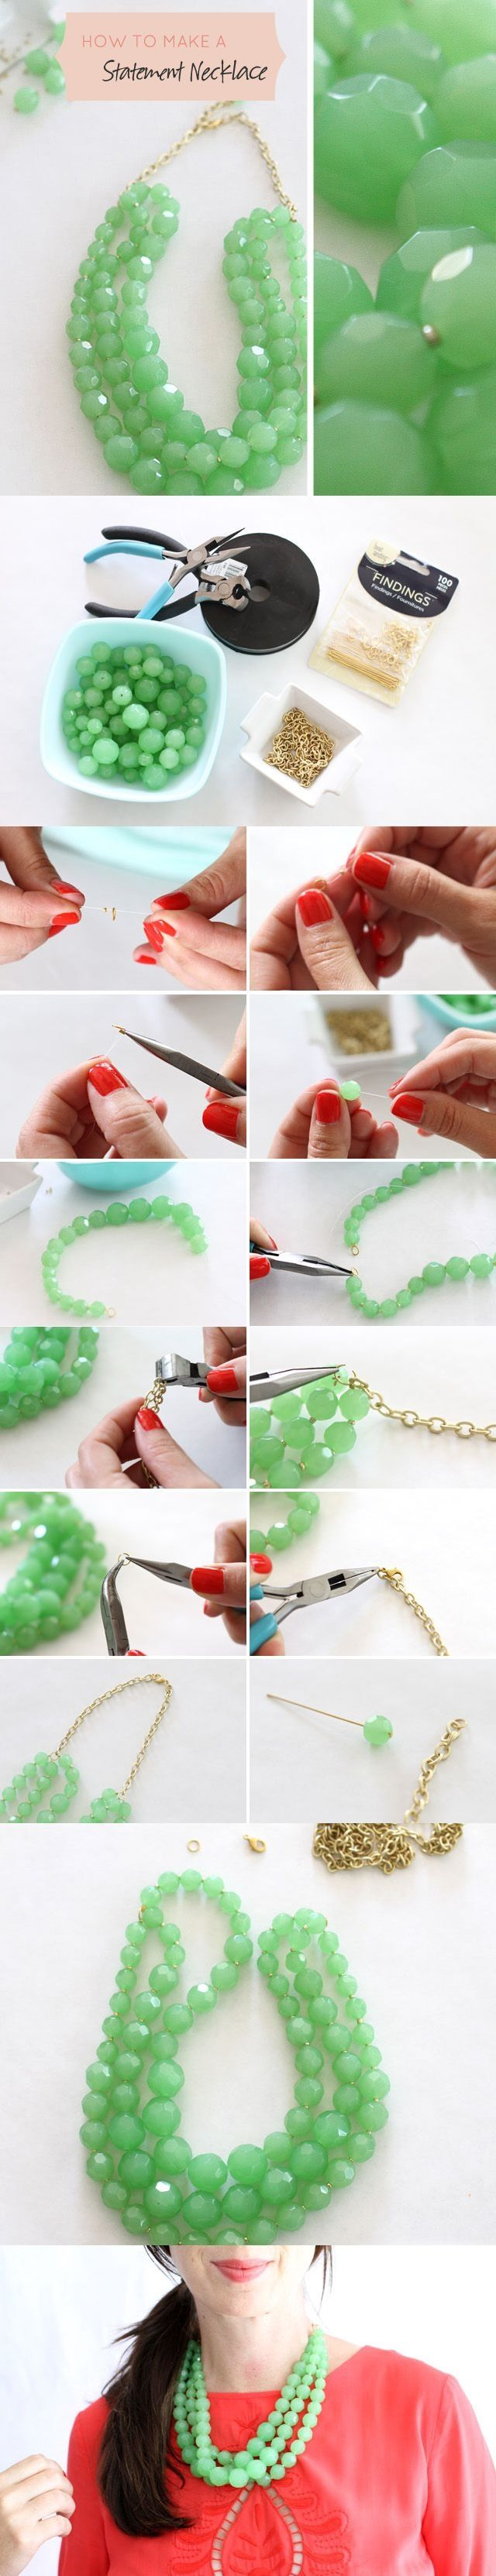 189 best jewelry images on pinterest jewerly bangle and build diy statement necklace diy crafts craft ideas easy crafts diy ideas crafty easy diy diy jewelry solutioingenieria Images